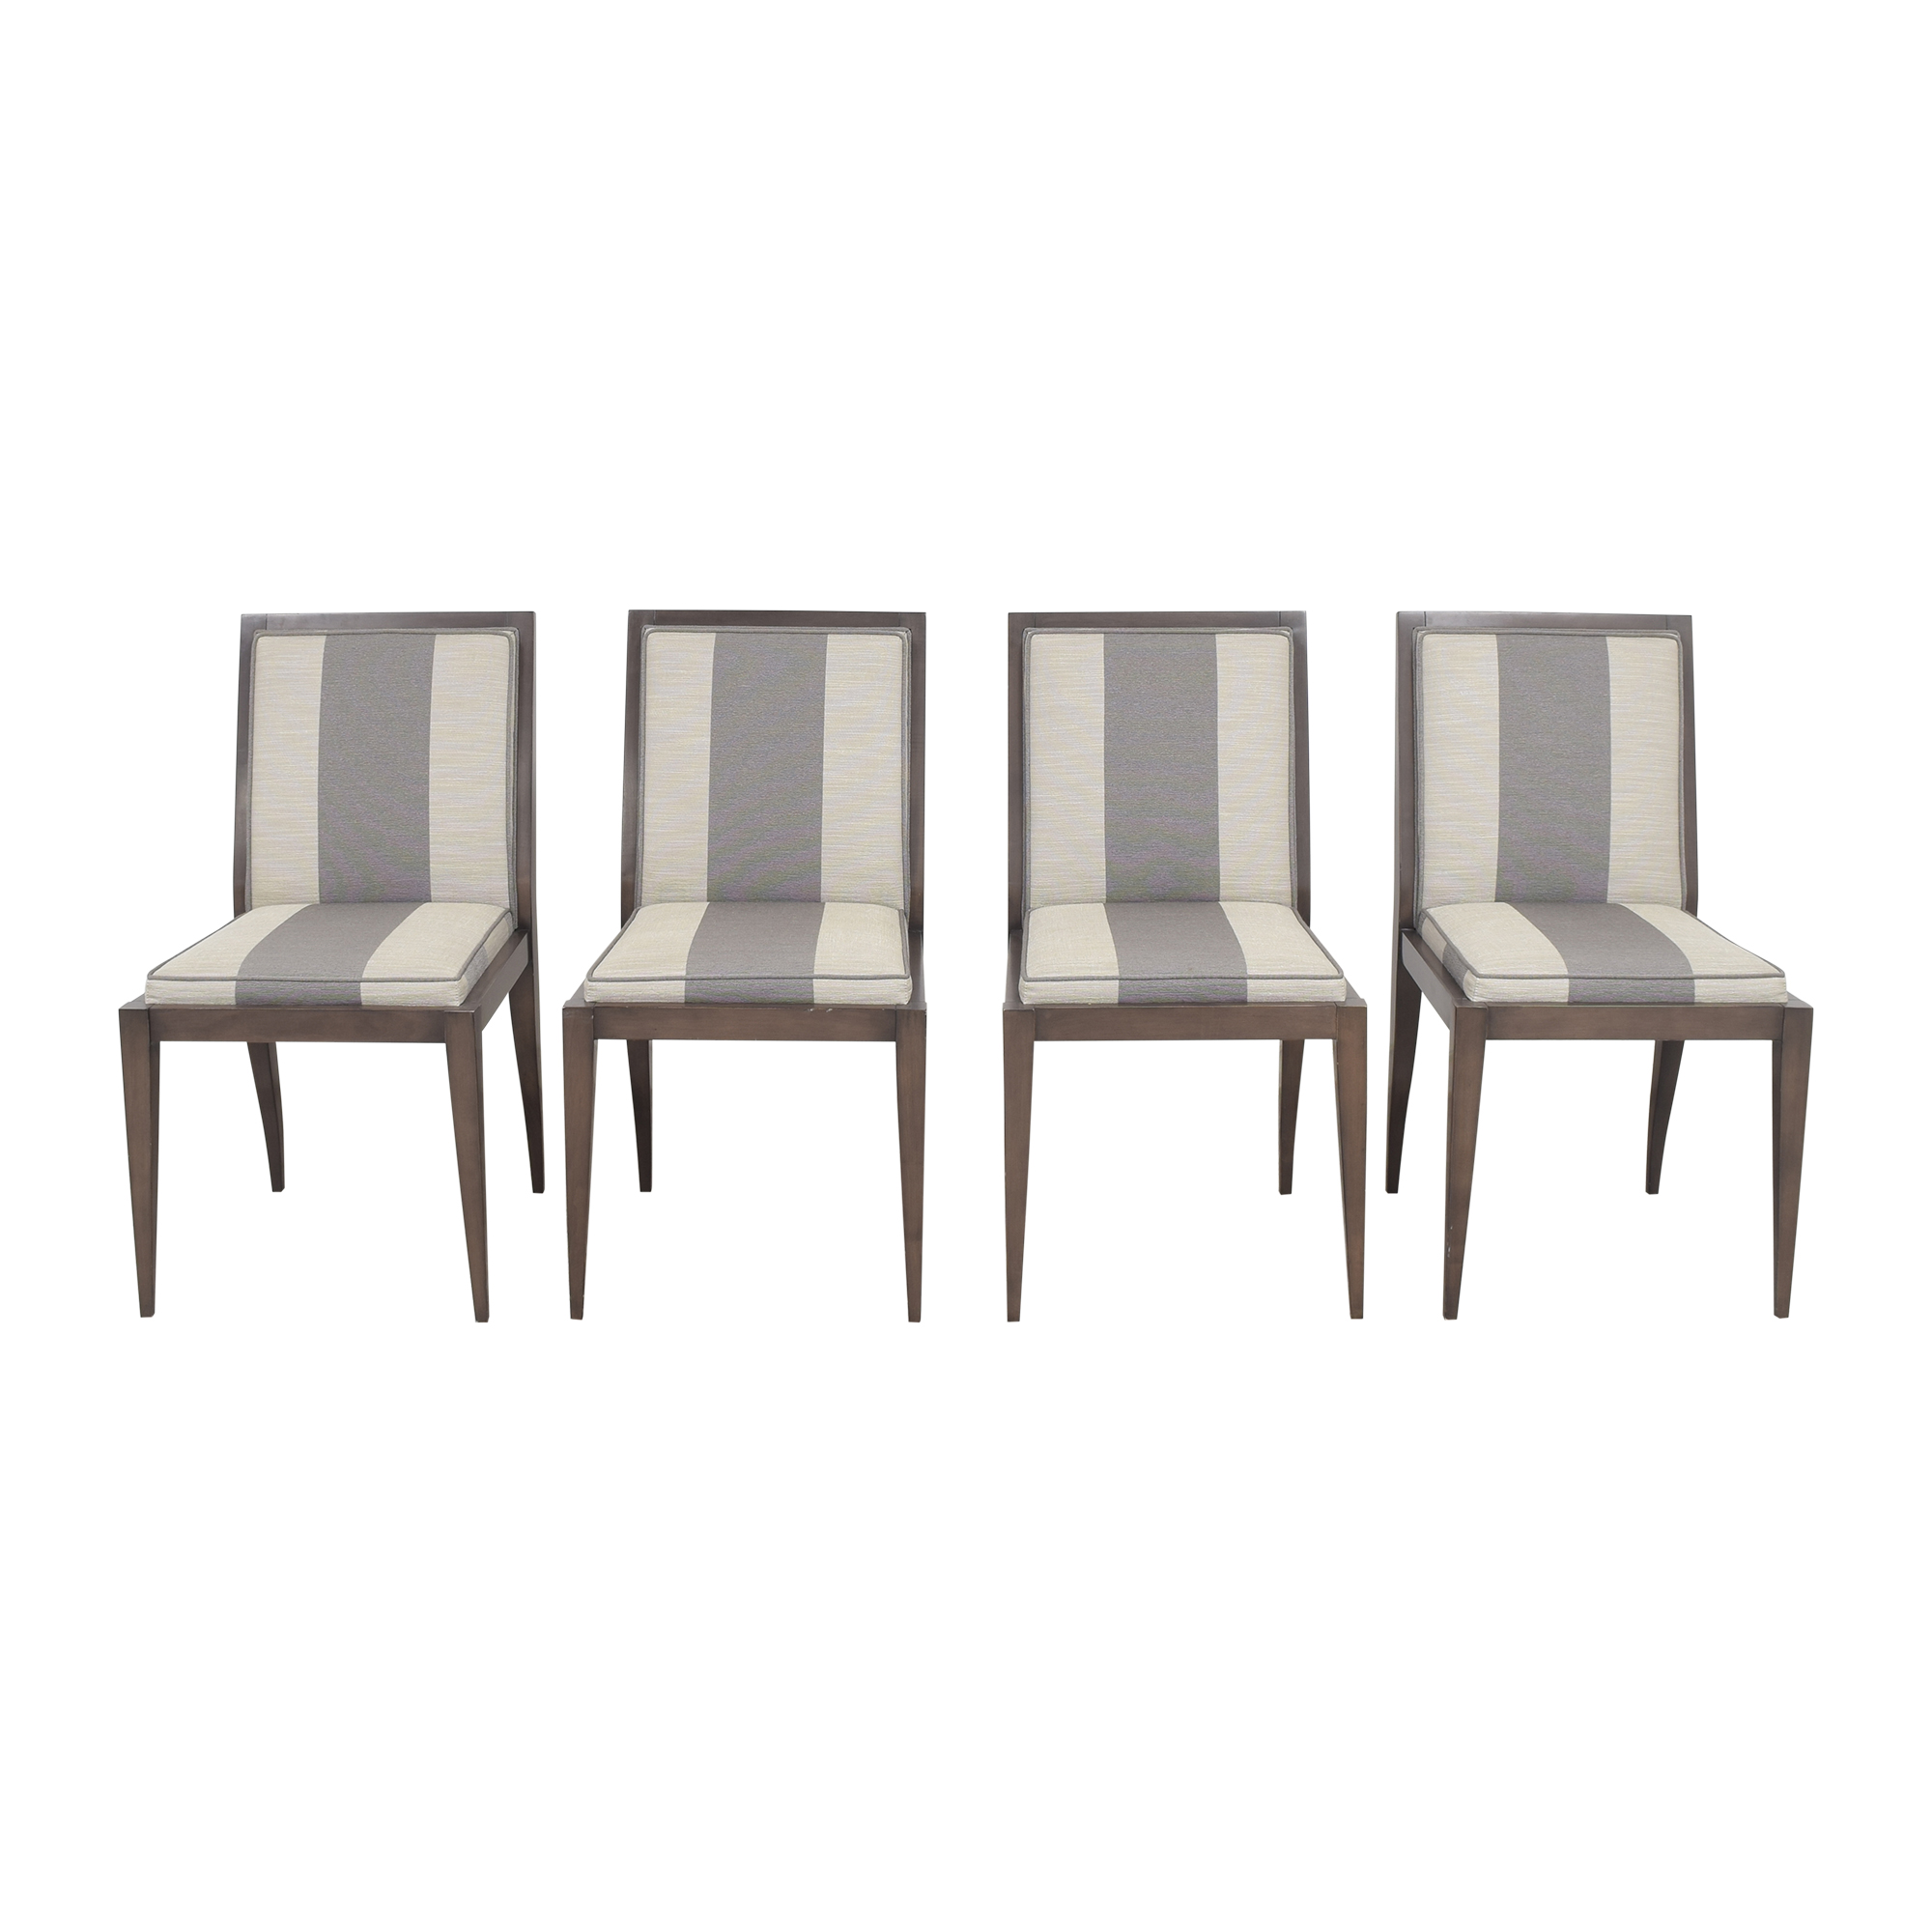 buy Swaim Salem Dining Chairs Swaim Dining Chairs